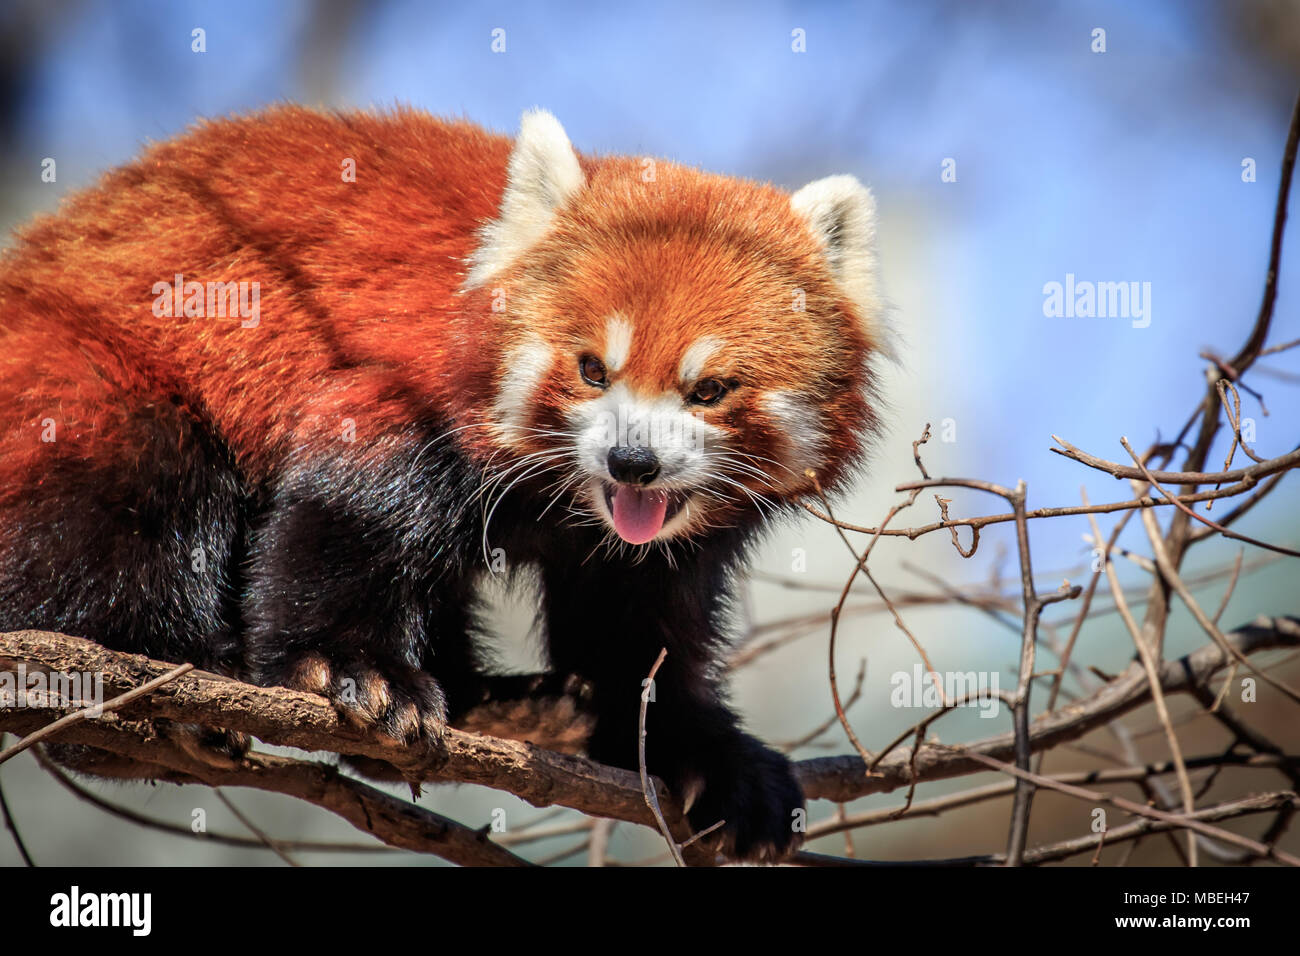 A Red Panda (Ailurus fulgens) in a tree. - Stock Image